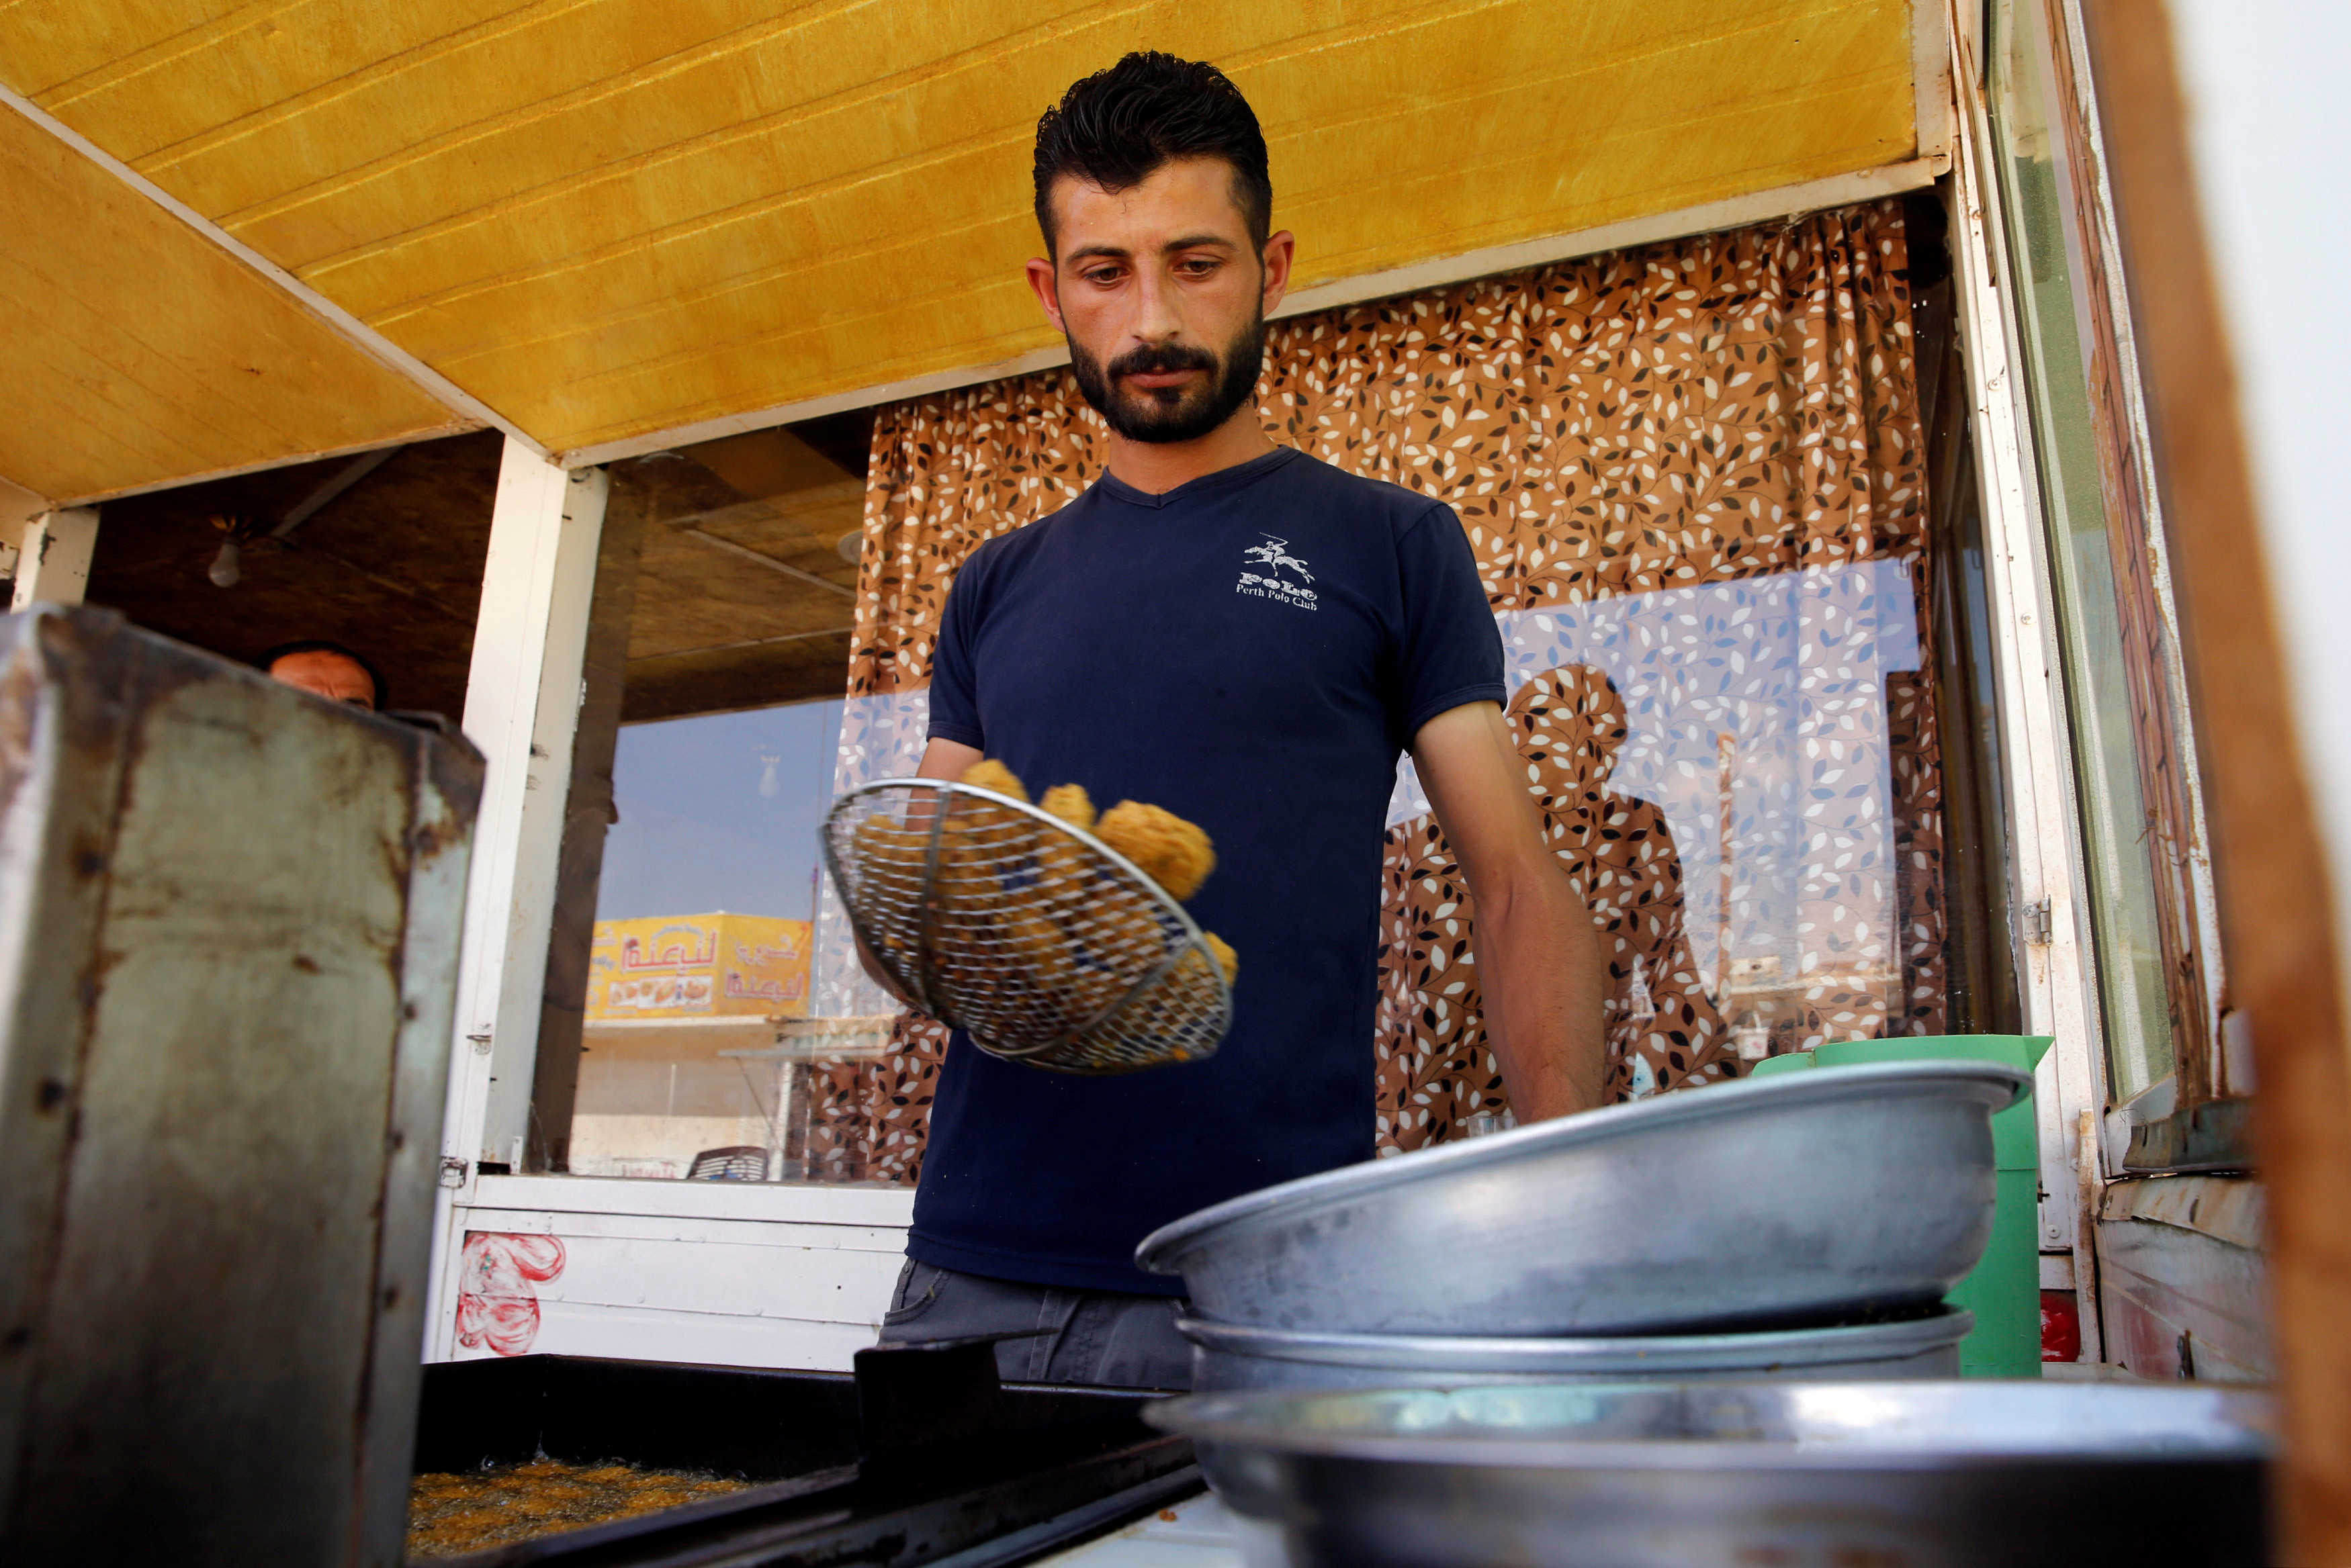 A Syrian refugee works at his restaurant in the Zaatari camp.